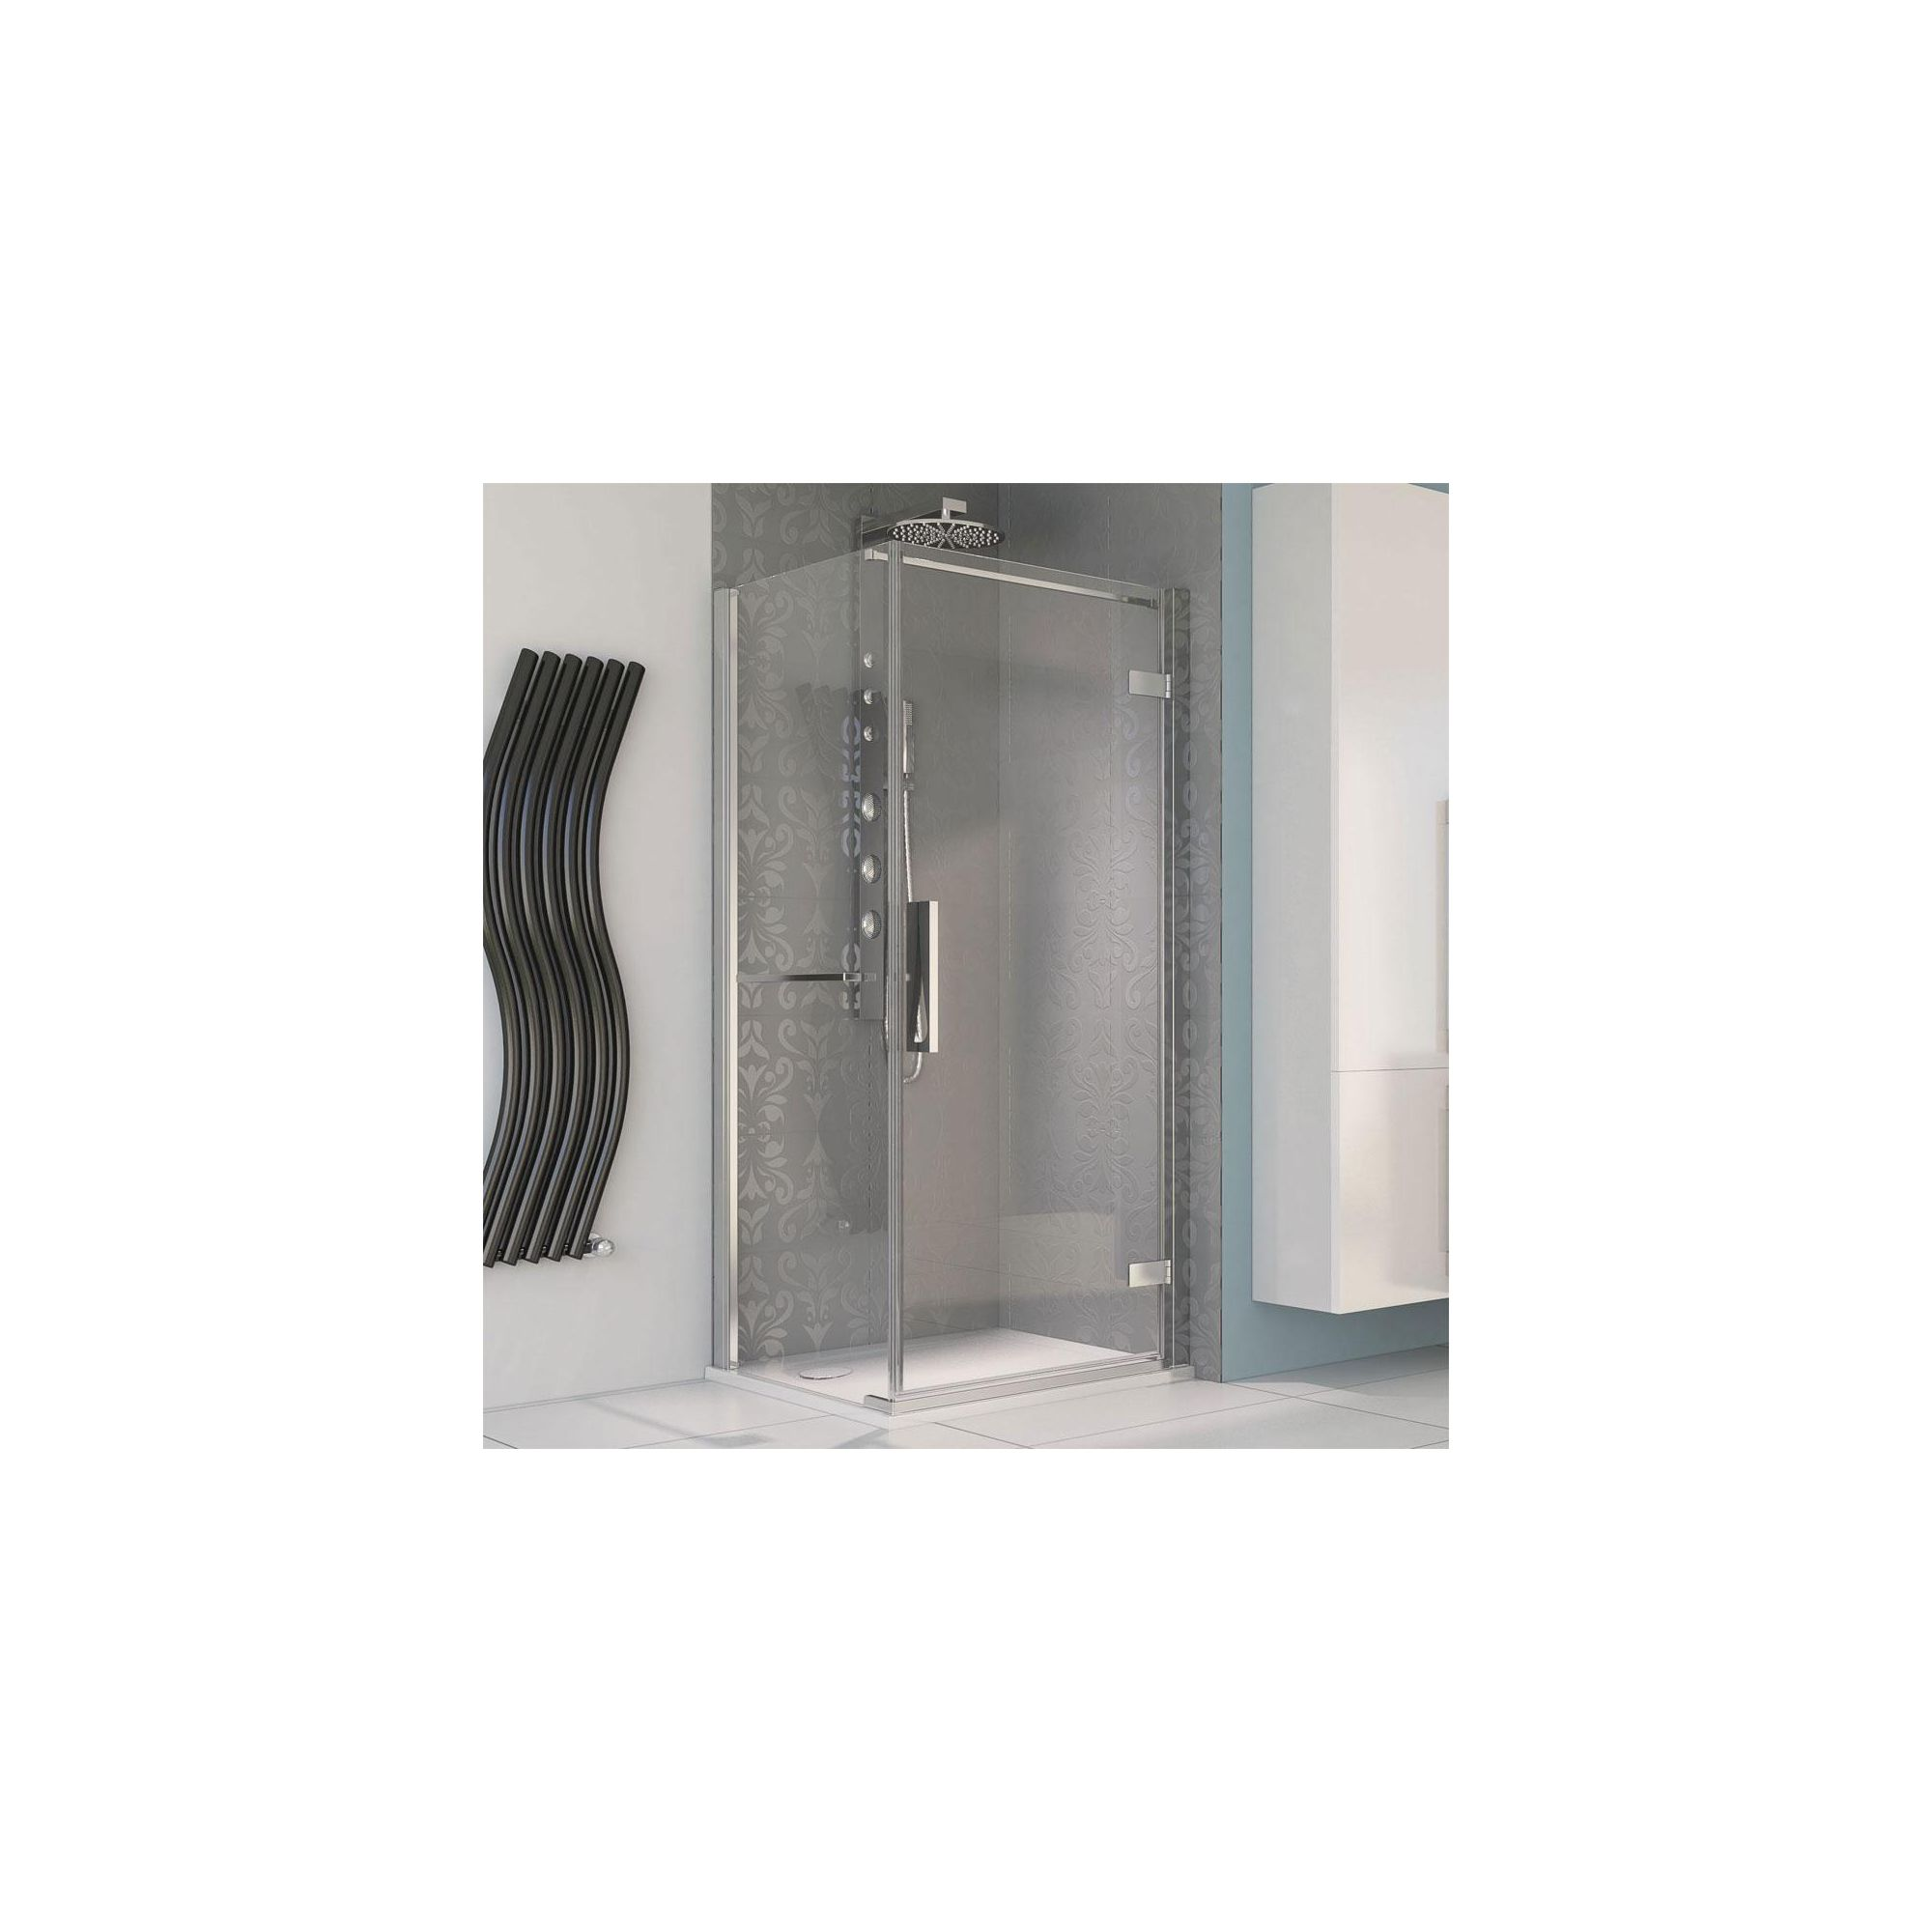 Aqualux AQUA8 Hinge Pivot Shower Door, 900mm Wide, Polished Silver Frame, 8mm Glass at Tesco Direct